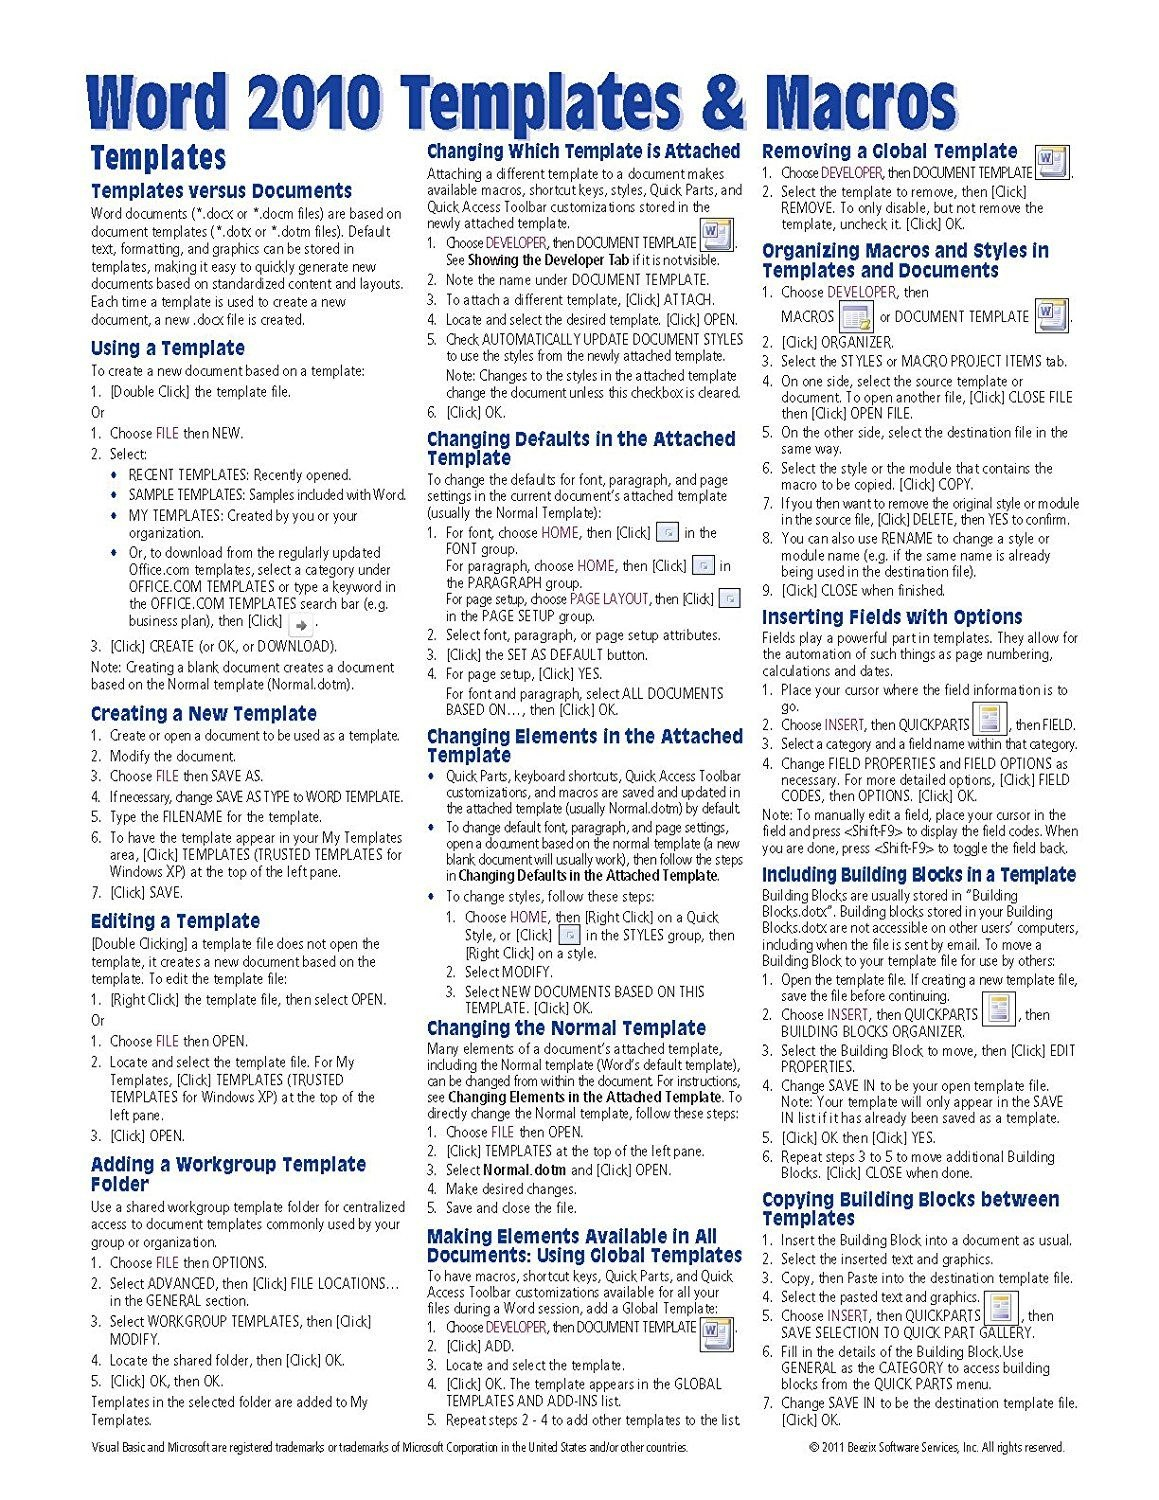 Microsoft Word  Templates  Macros Quick Reference Guide Cheat Within Cheat Sheet Template Word